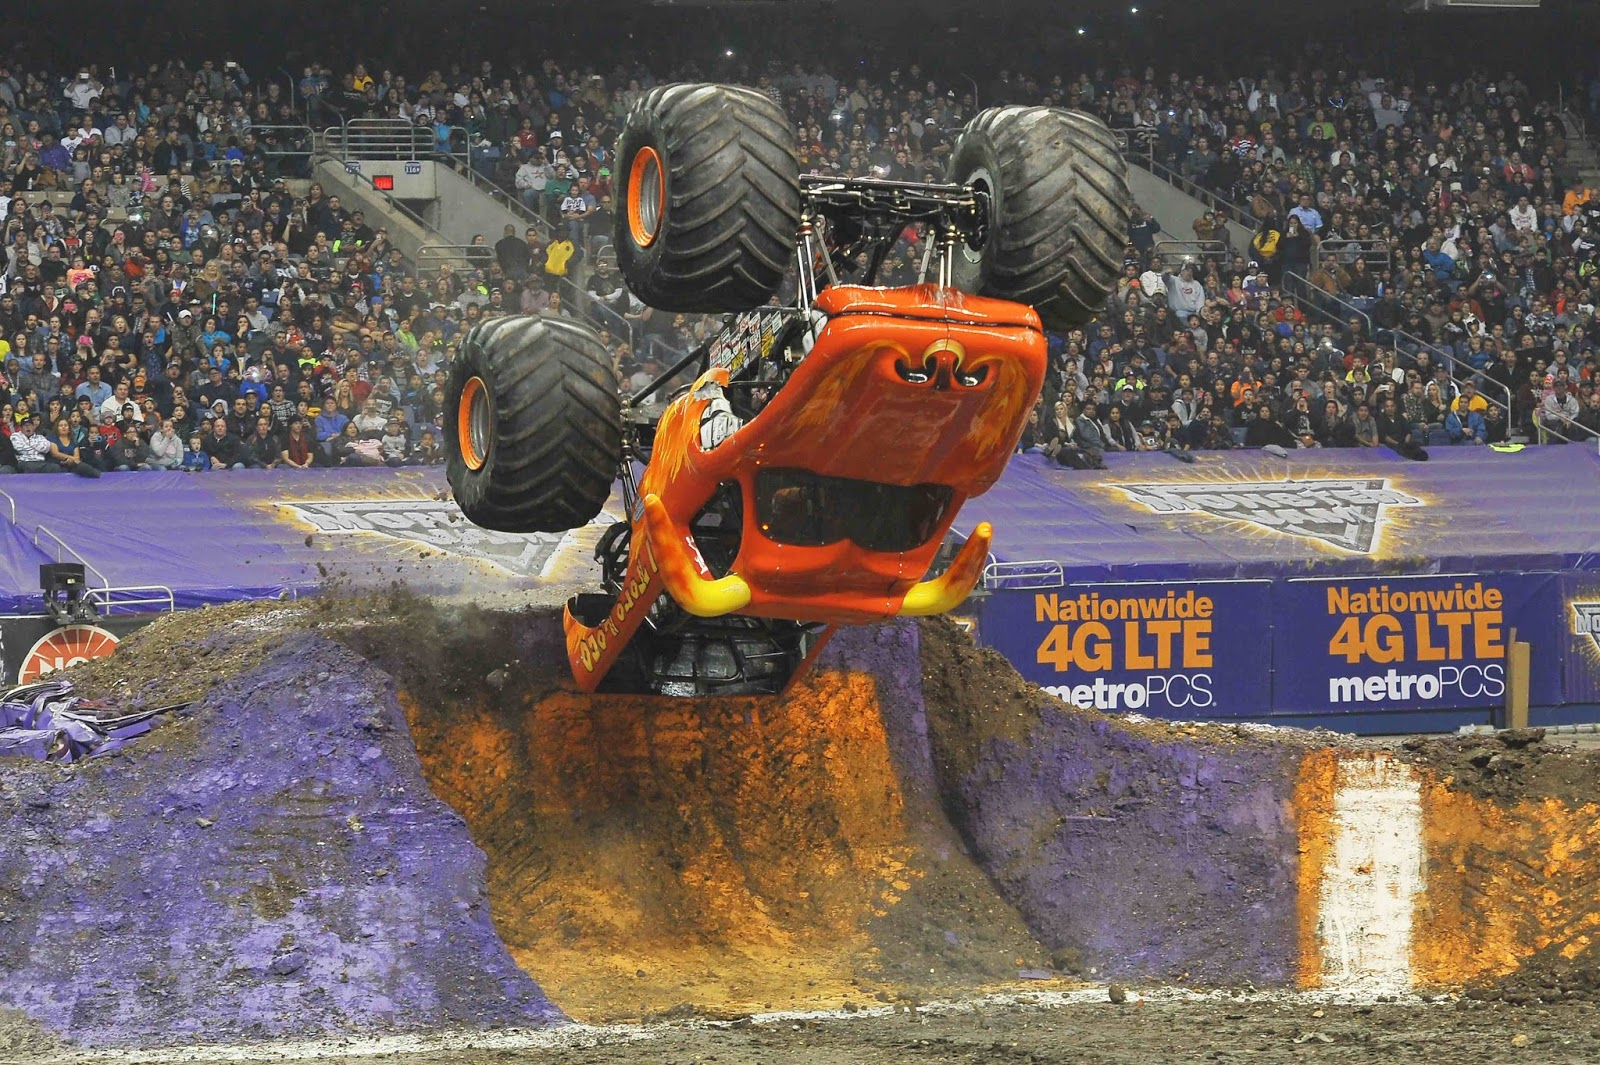 Full Throttle Family Fun In Cardiff On 3rd September At Monster Jam®